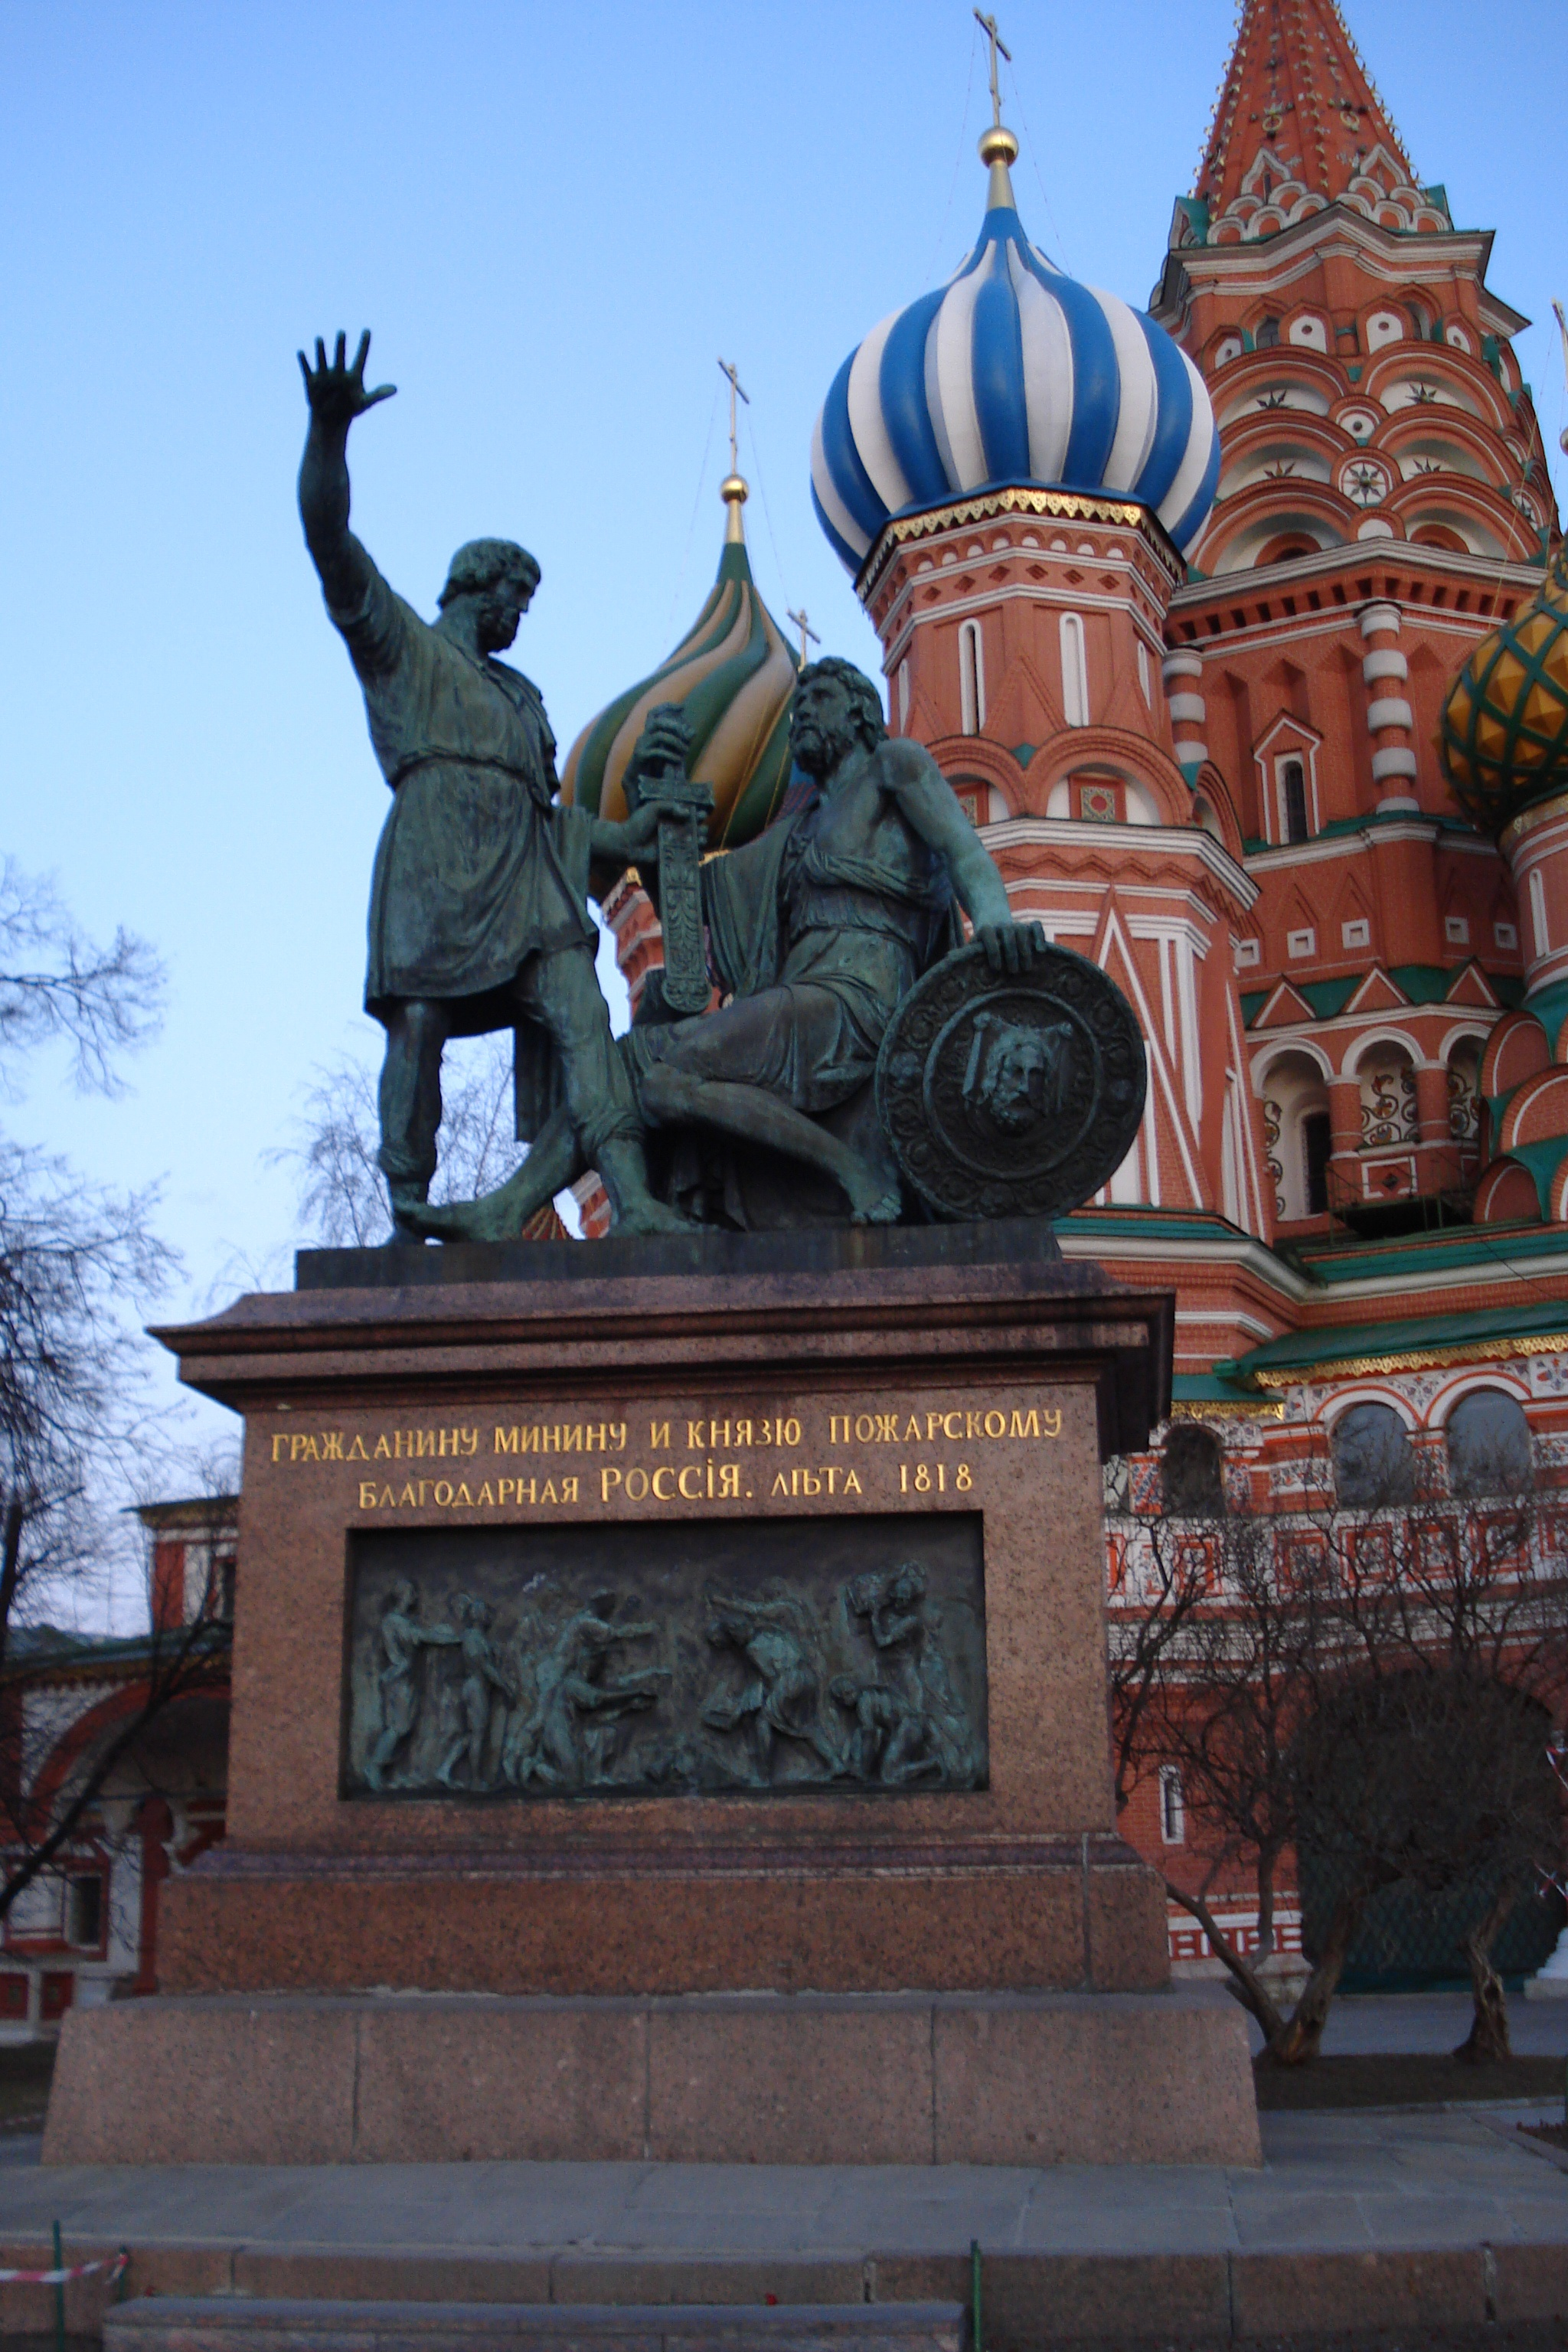 Monument_to_Minin_and_Pozharsky_and_St_Basils_Cthedral2.jpg